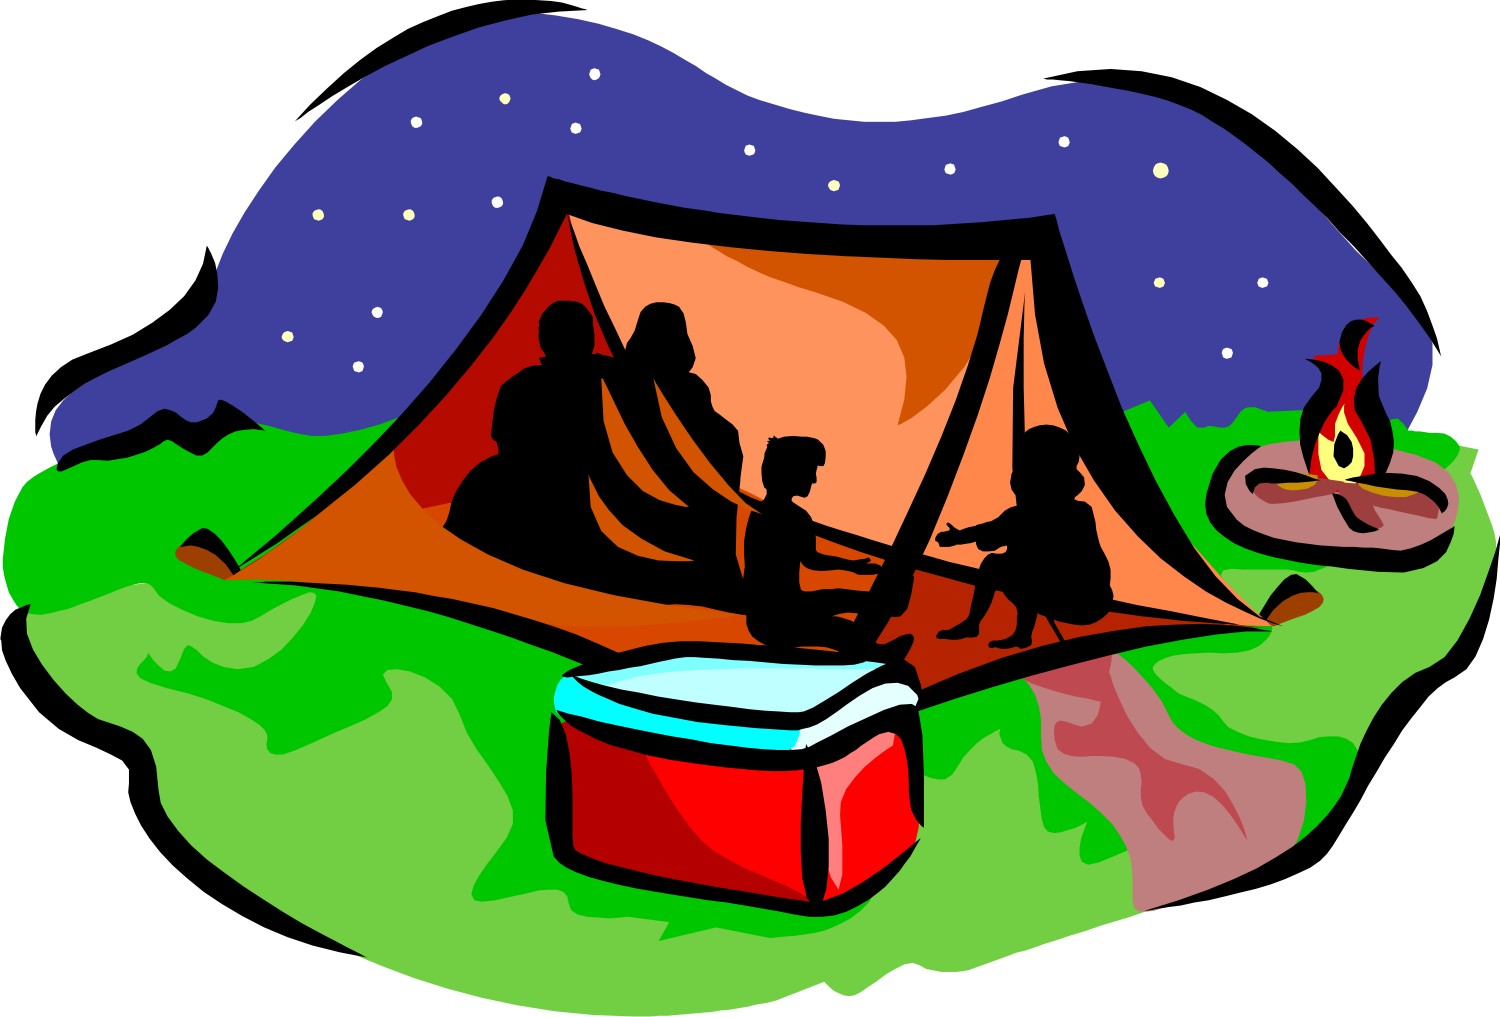 Camper clipart kid campfire Panda Free Clipart Images Tent